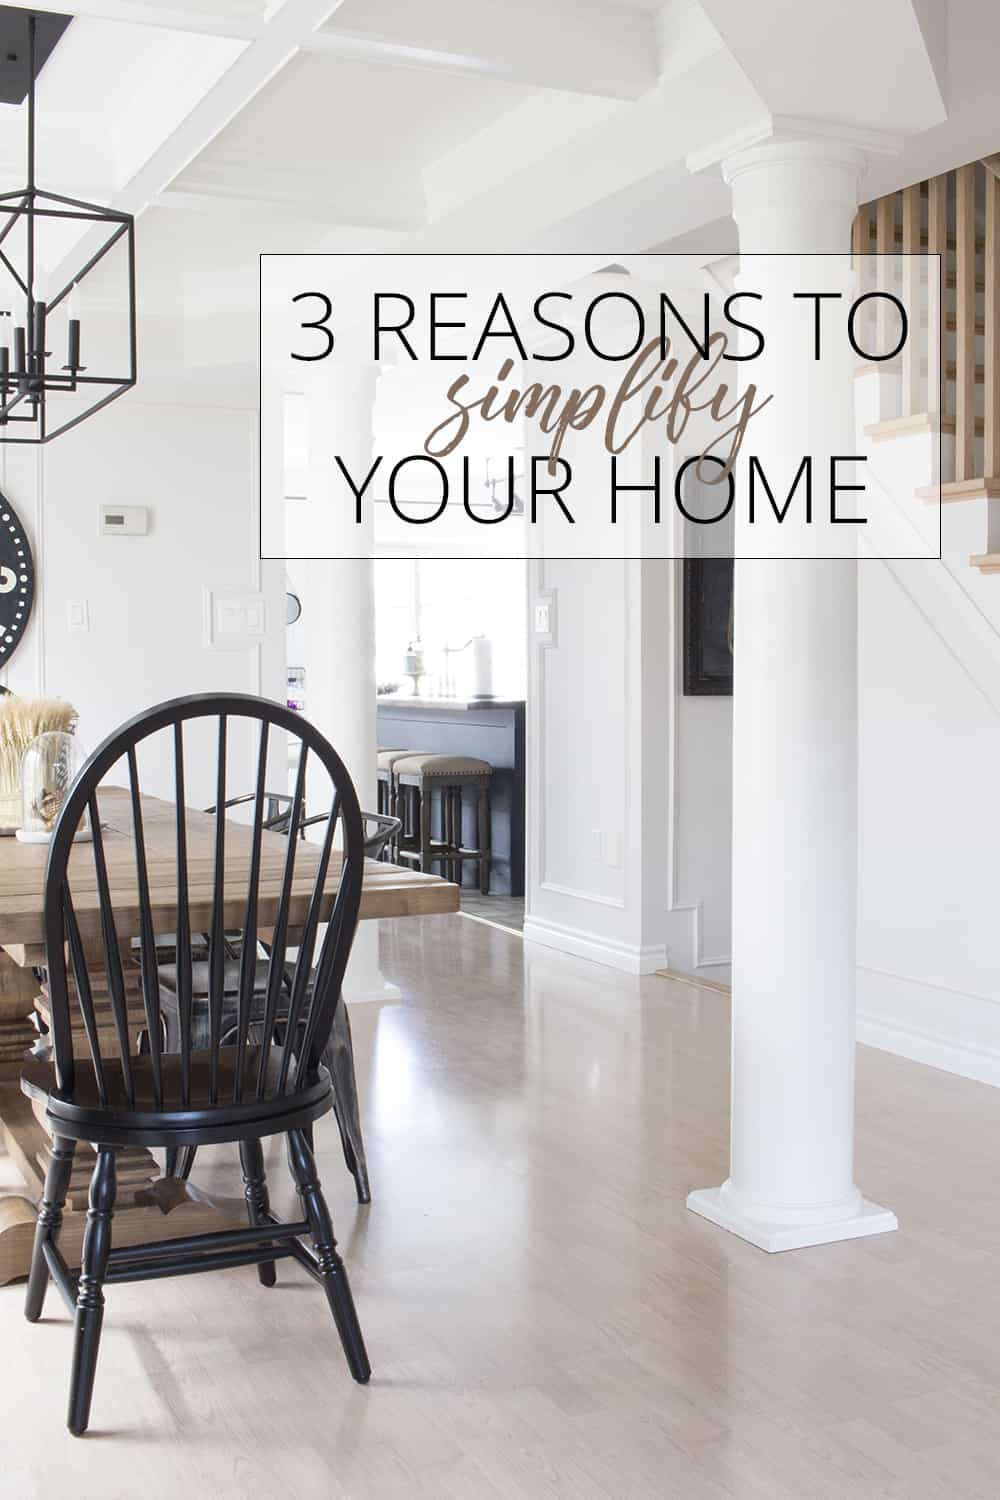 3 reasons to simplify your home